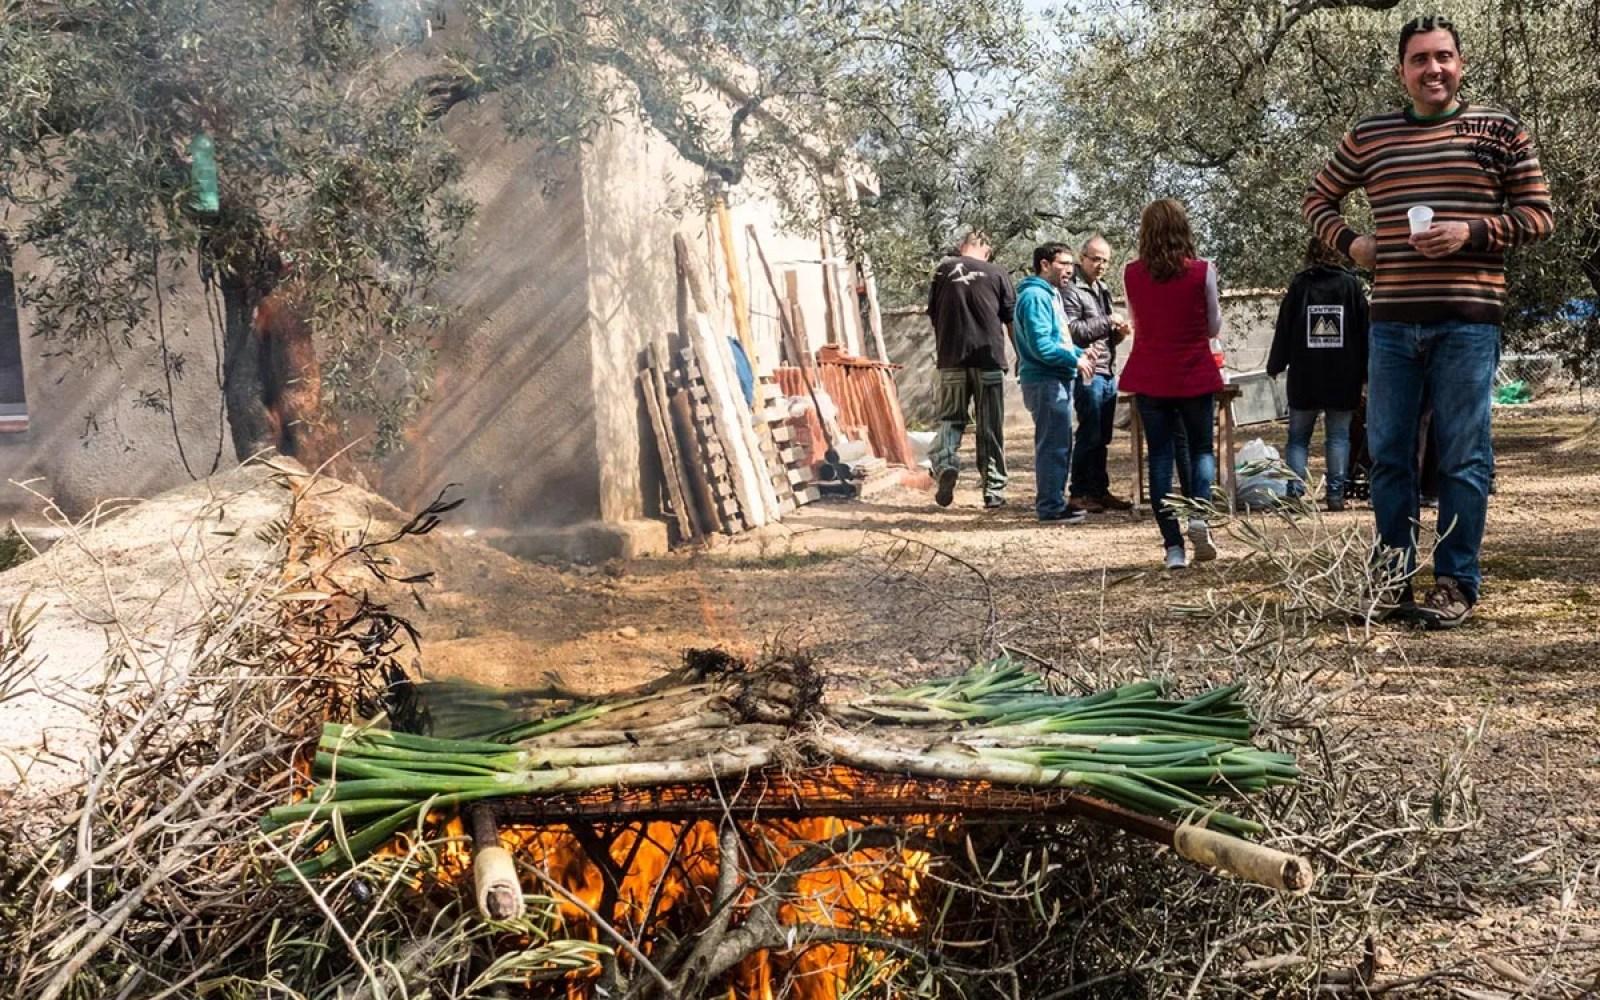 Calçots on the Fire